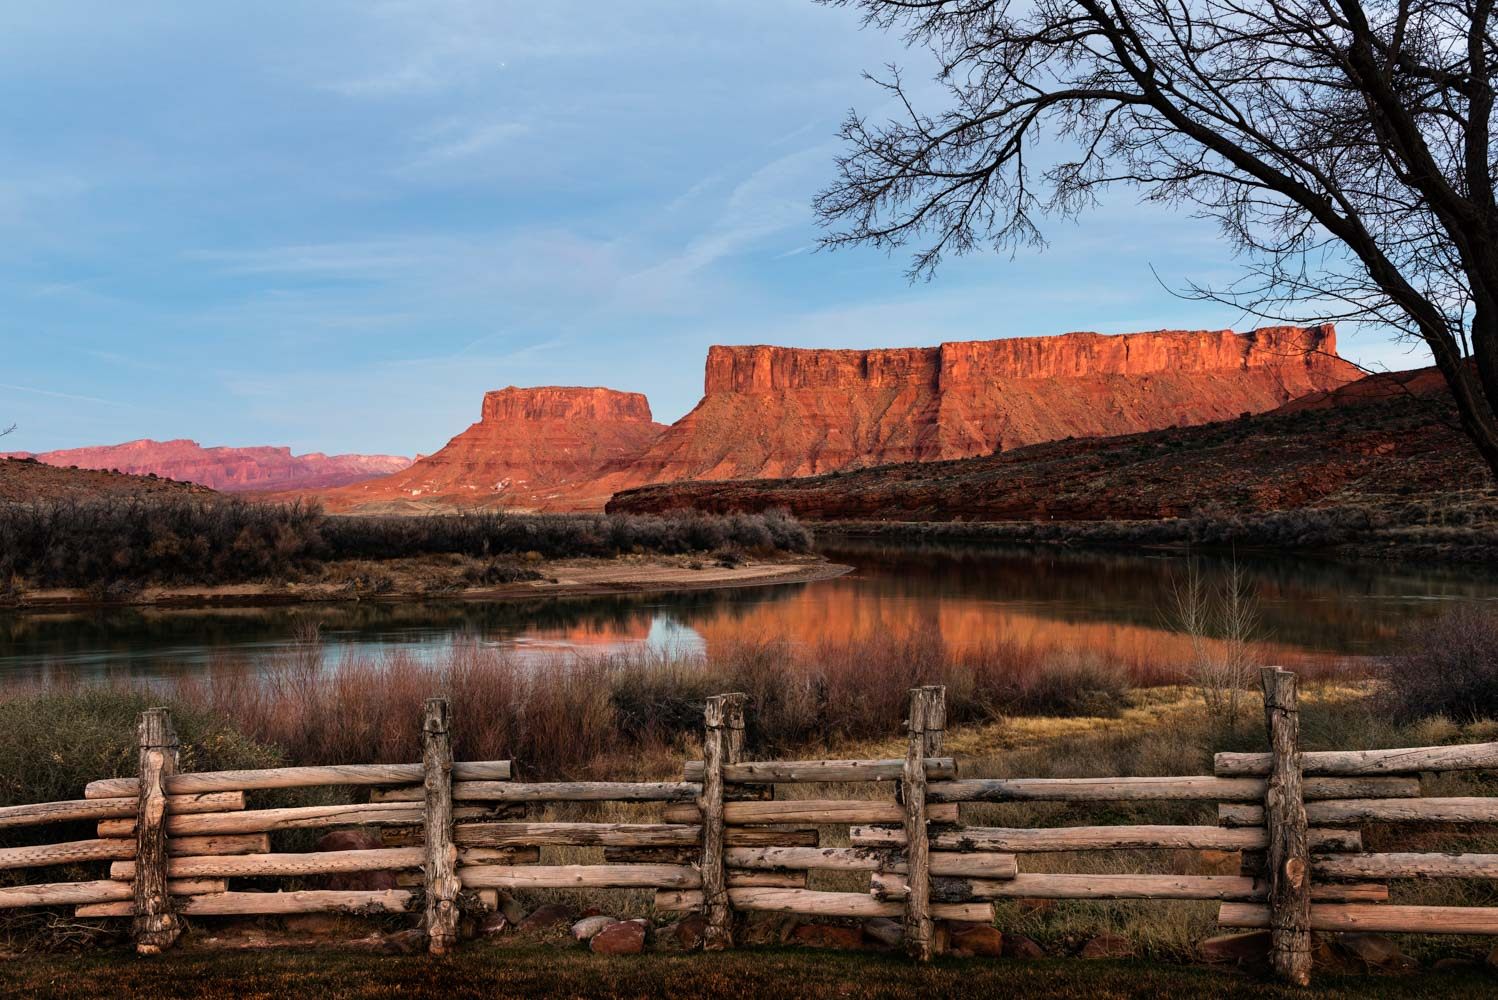 View from our riverside suite at Red Cliffs Lodge, Moab;Nikon D810, 24–70mm, f/8, 2.5s, ISO 200